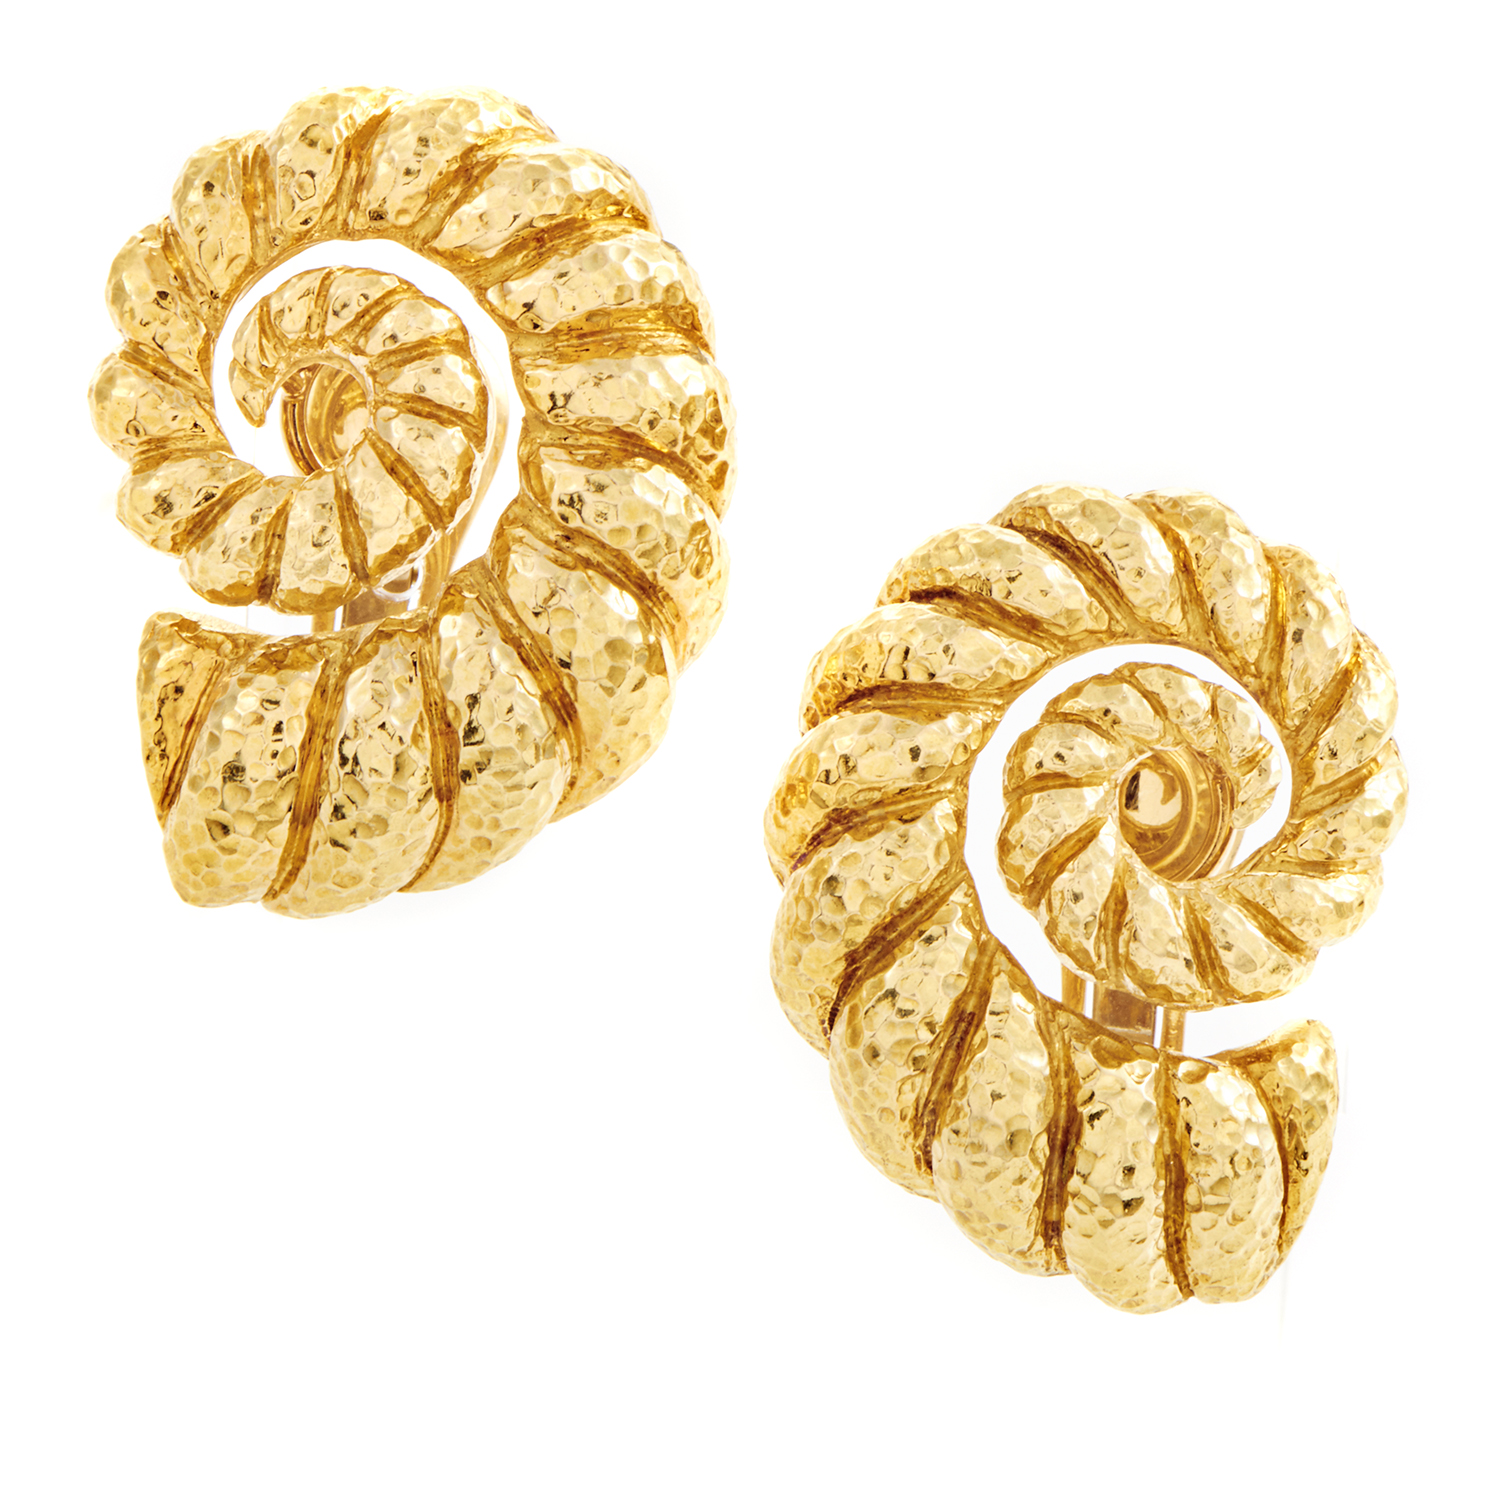 David Webb Women's 18K Yellow Gold Coiled Rope Clip-on Earrings